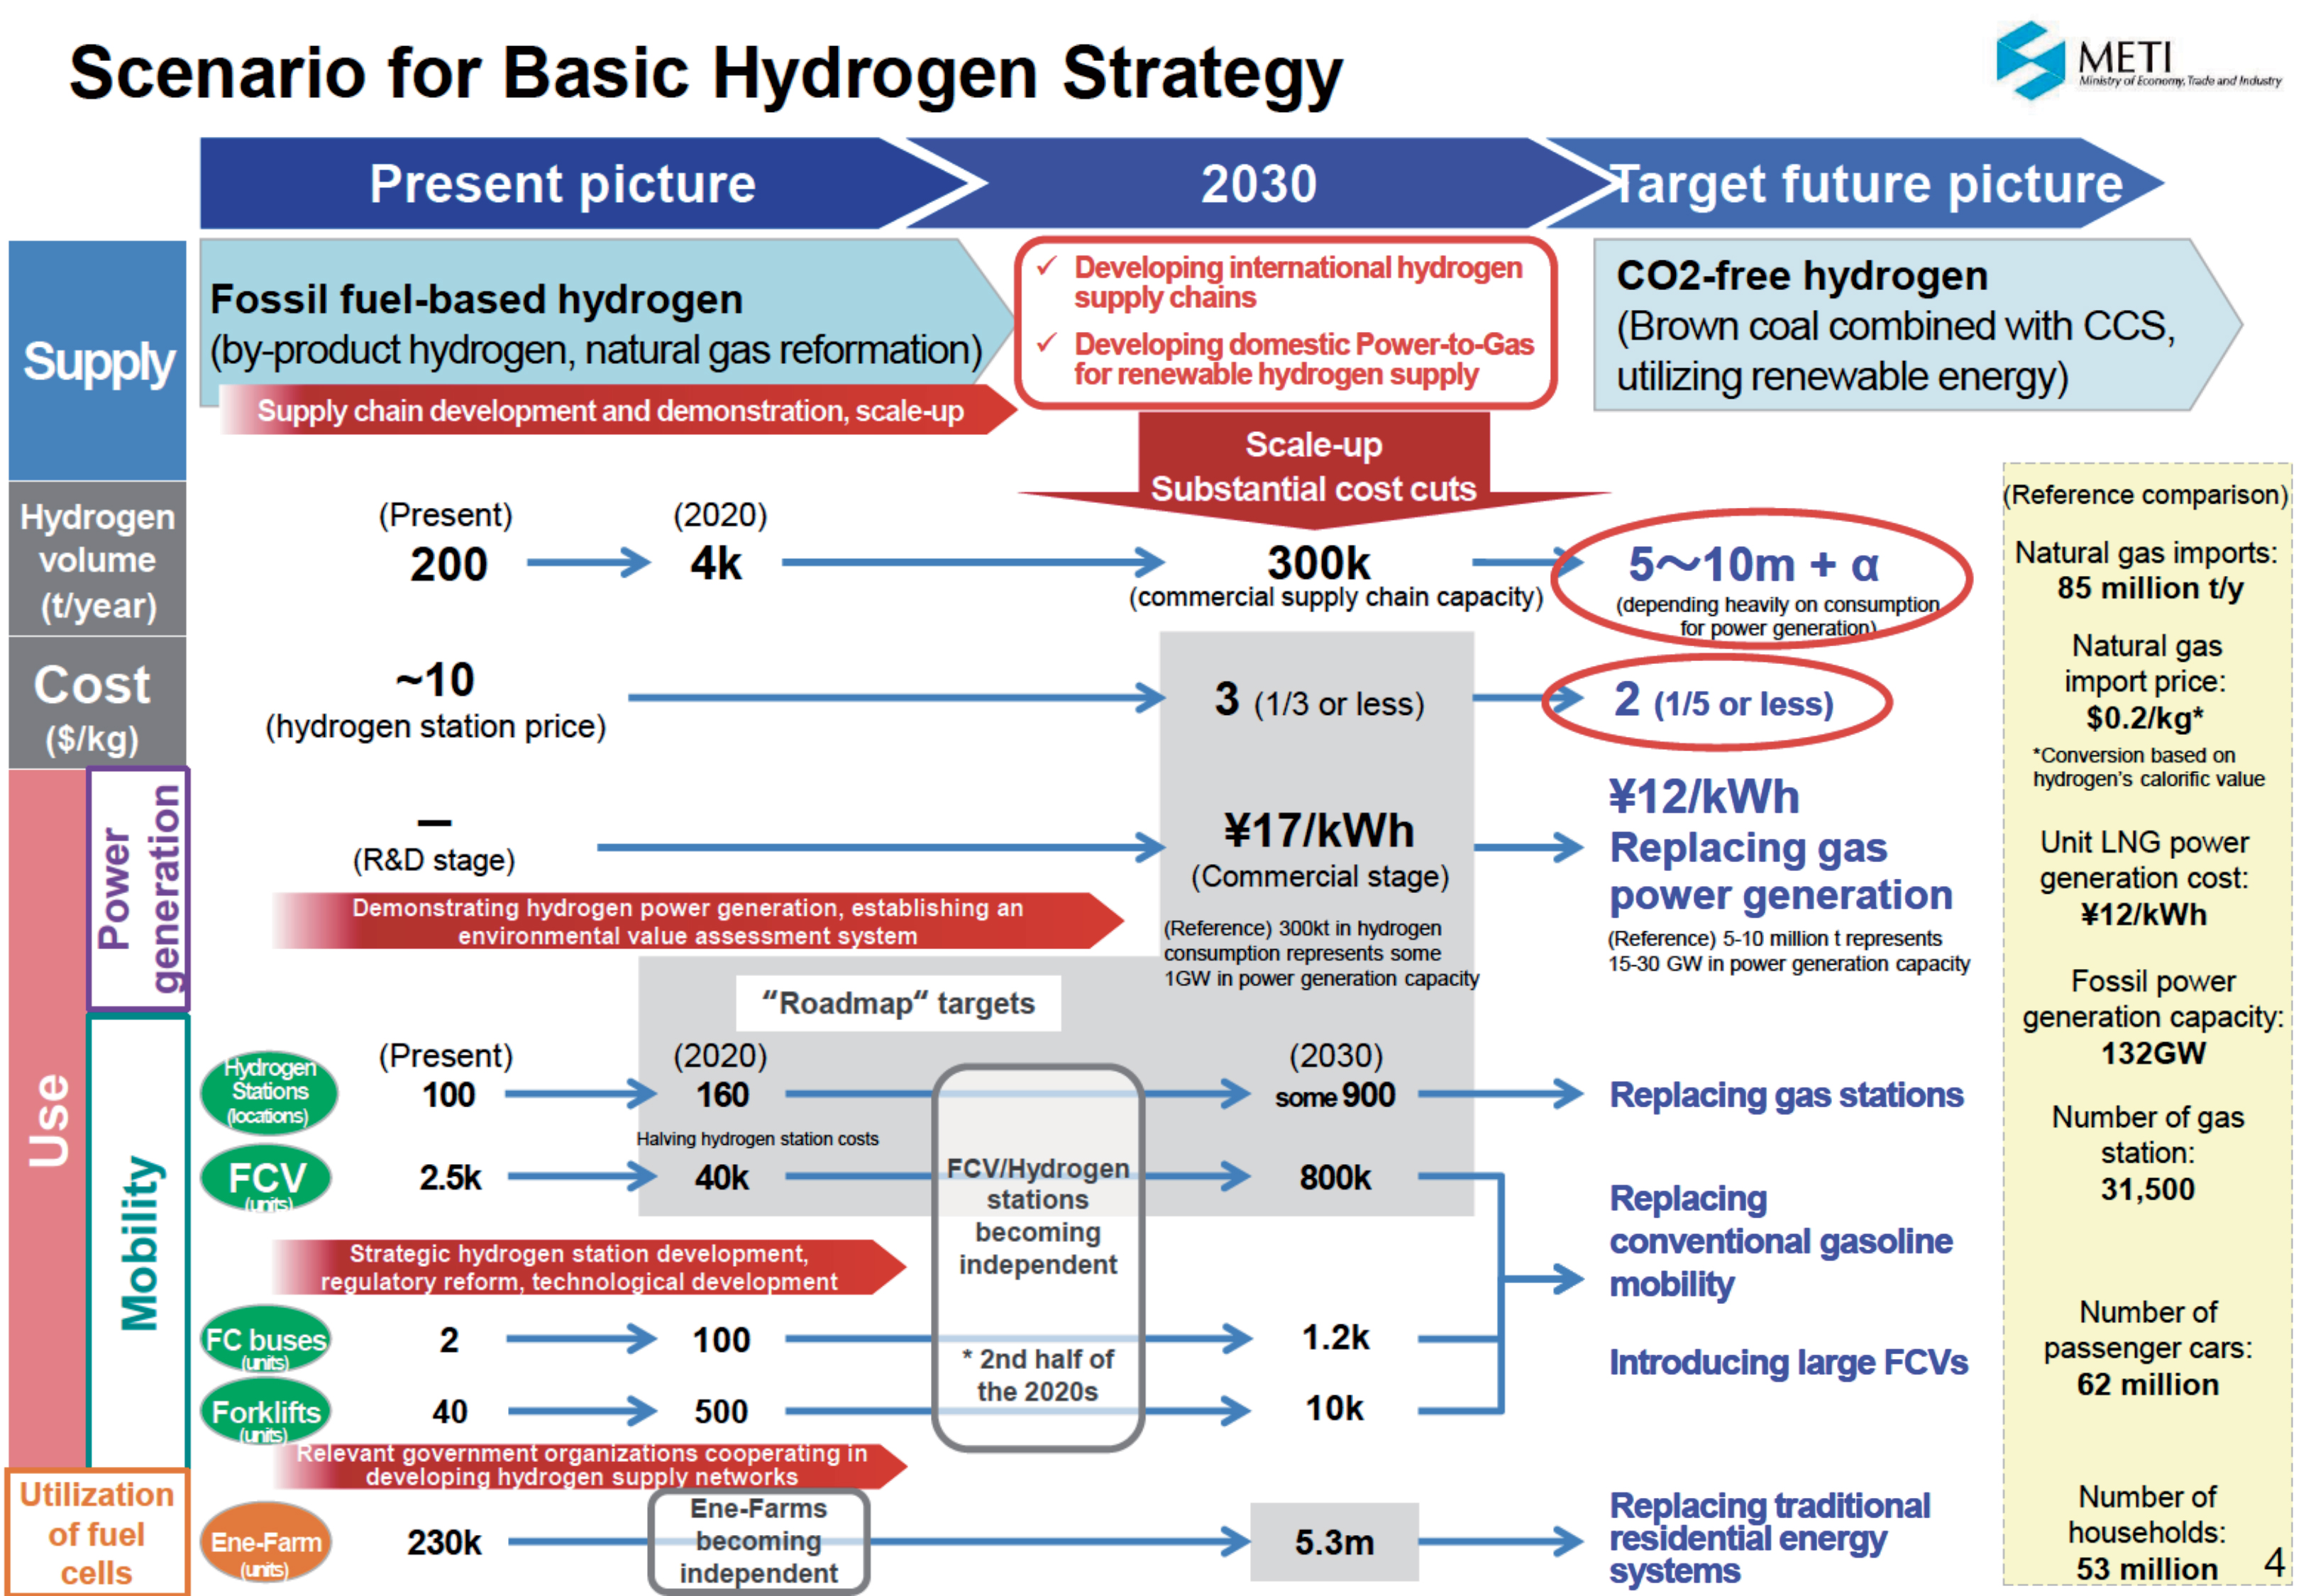 a graph showing the scenario on hydrogen basic strategy: produced volume, or cost, or system production, or final use are indicated at the present, at 2030 and at the future